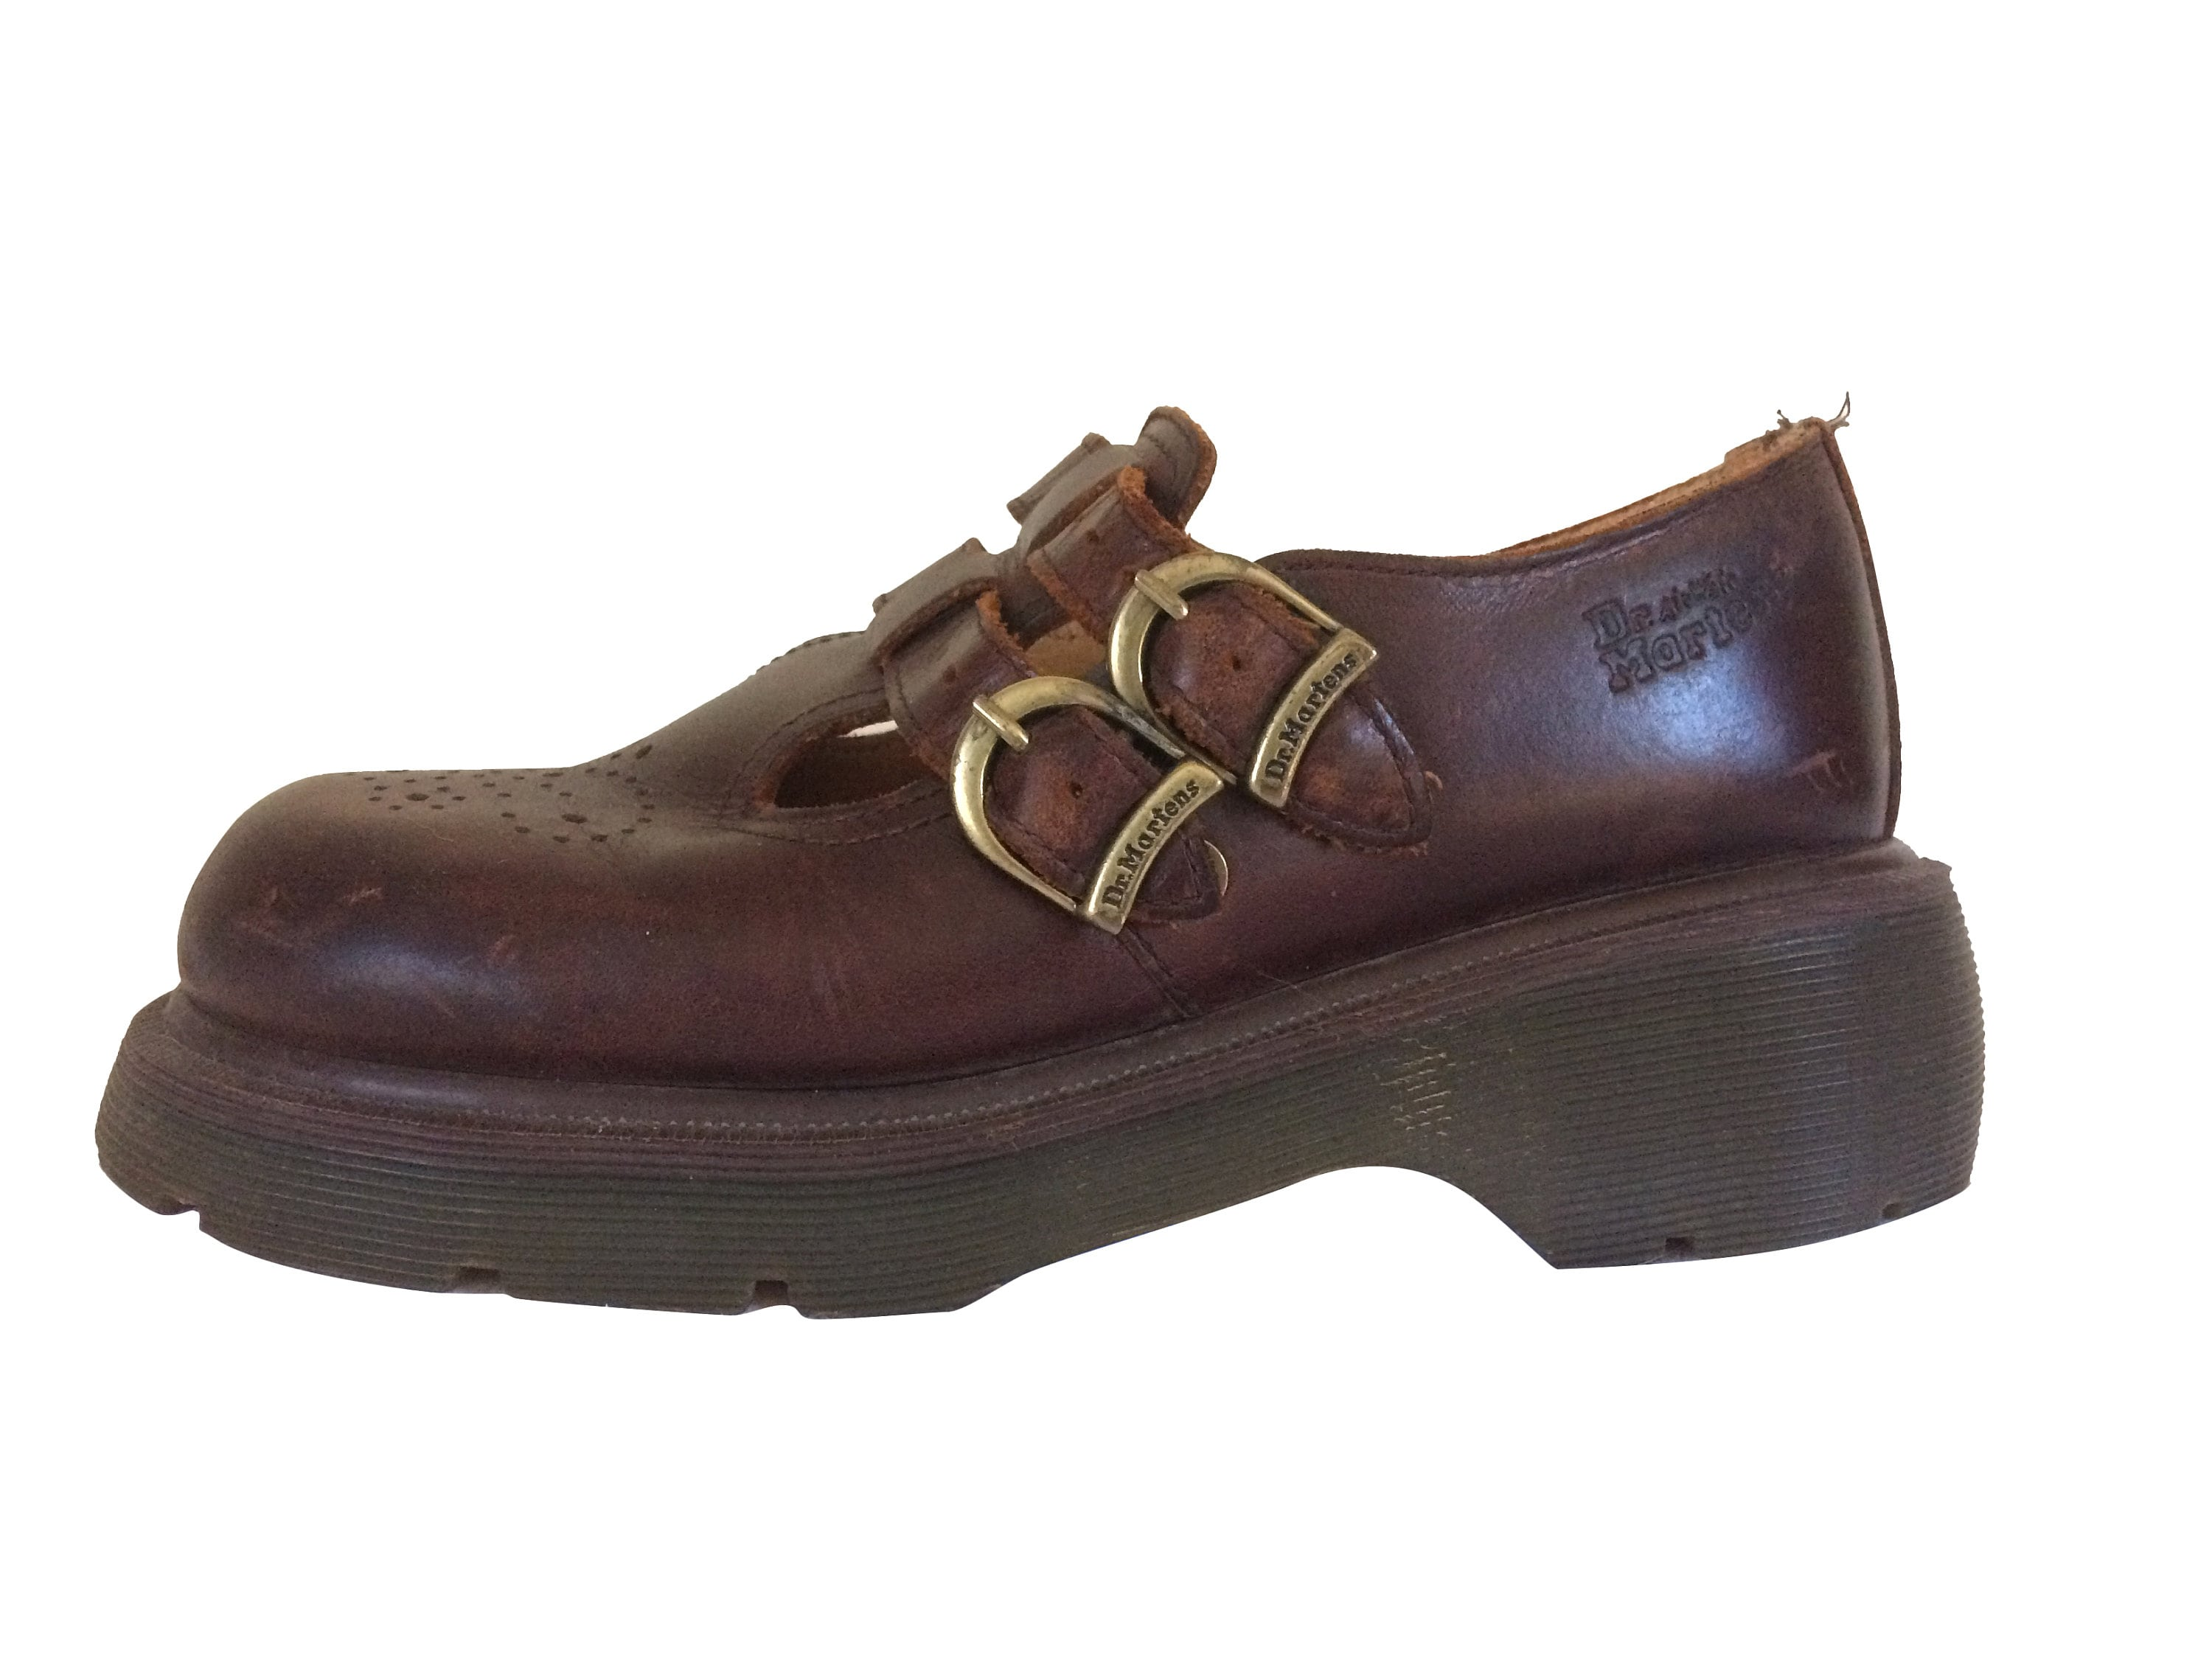 18cad8208aafe Vintage 90s Dr Martens Mary Jane 90s Mary Jane Size 6 Brown Dr Martens  England Doc Martens Women Dr Martins Doc Martins Doc Martens Size 6